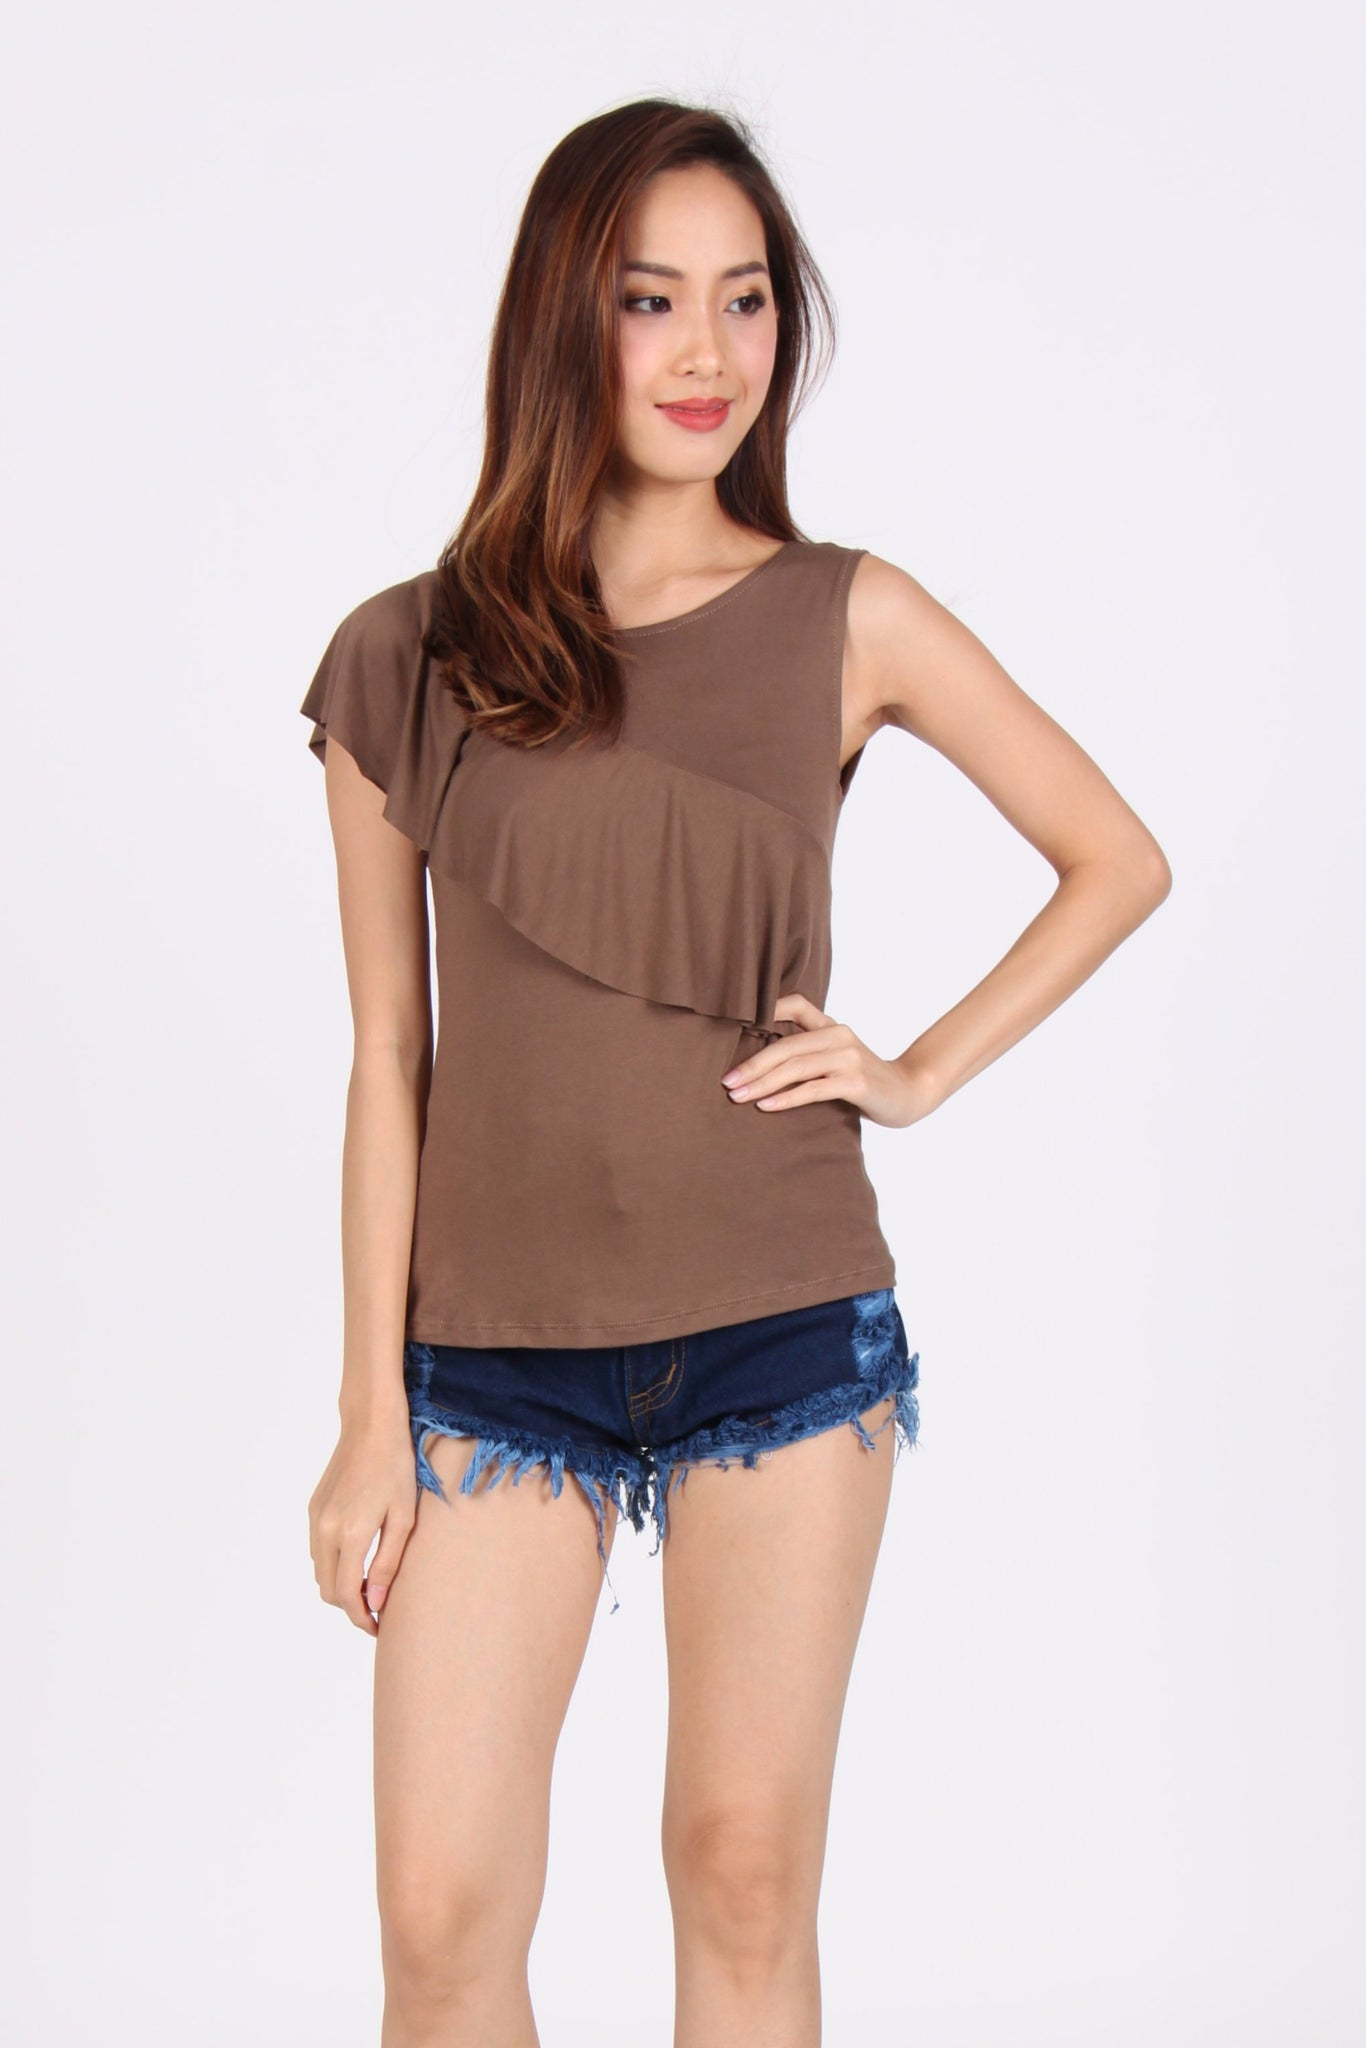 Basic Sleeveless Single Side Ruffles Cotton Top in Brown